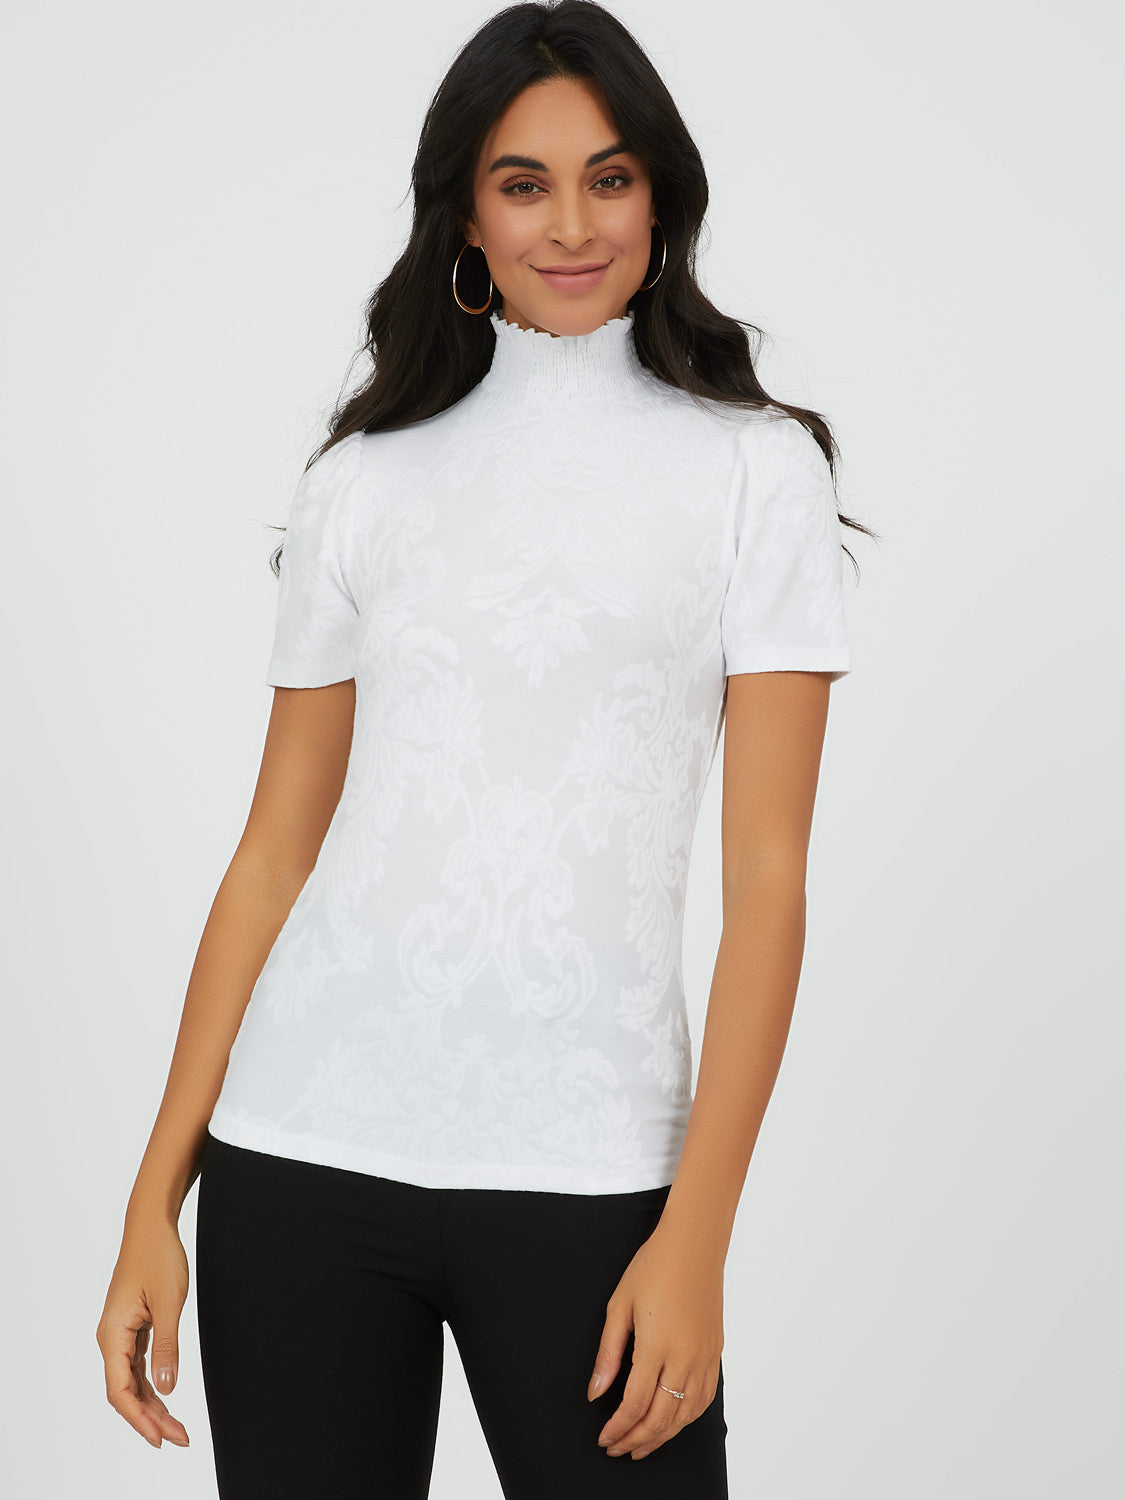 Short Puff Sleeve Mock Neck Jacquard Top